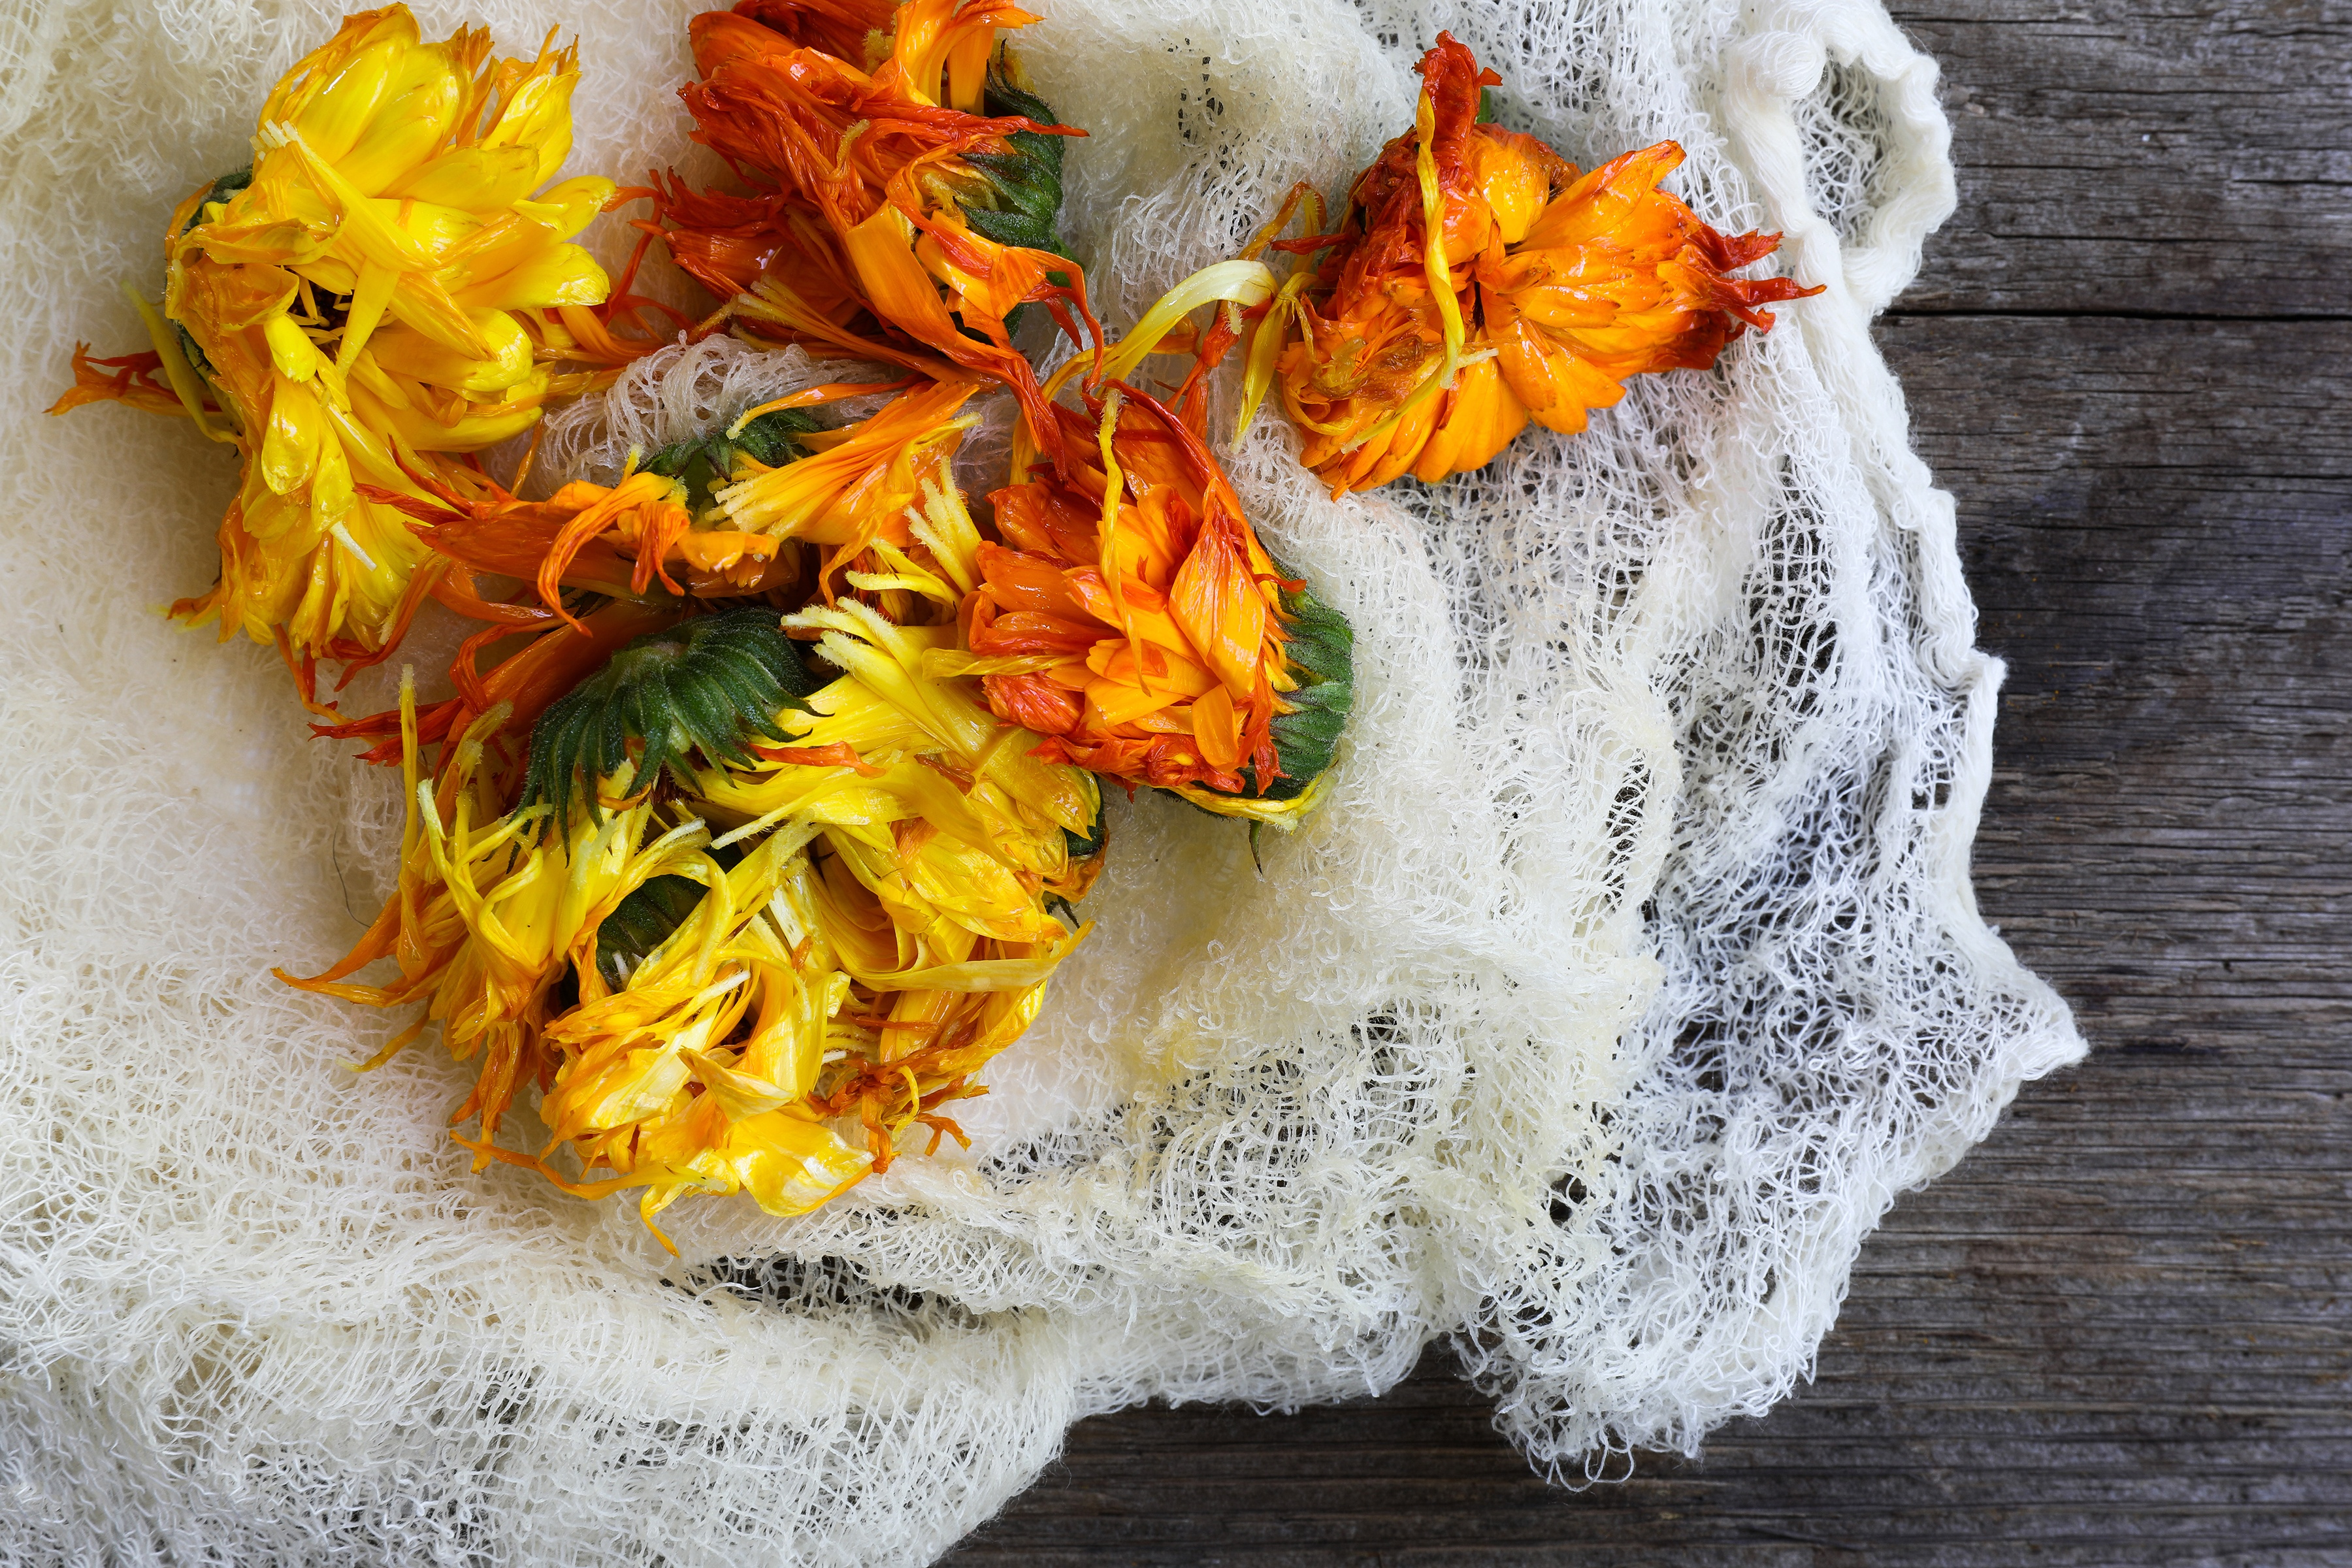 Calendula flowers laying on cheese cloth on worn wooden table